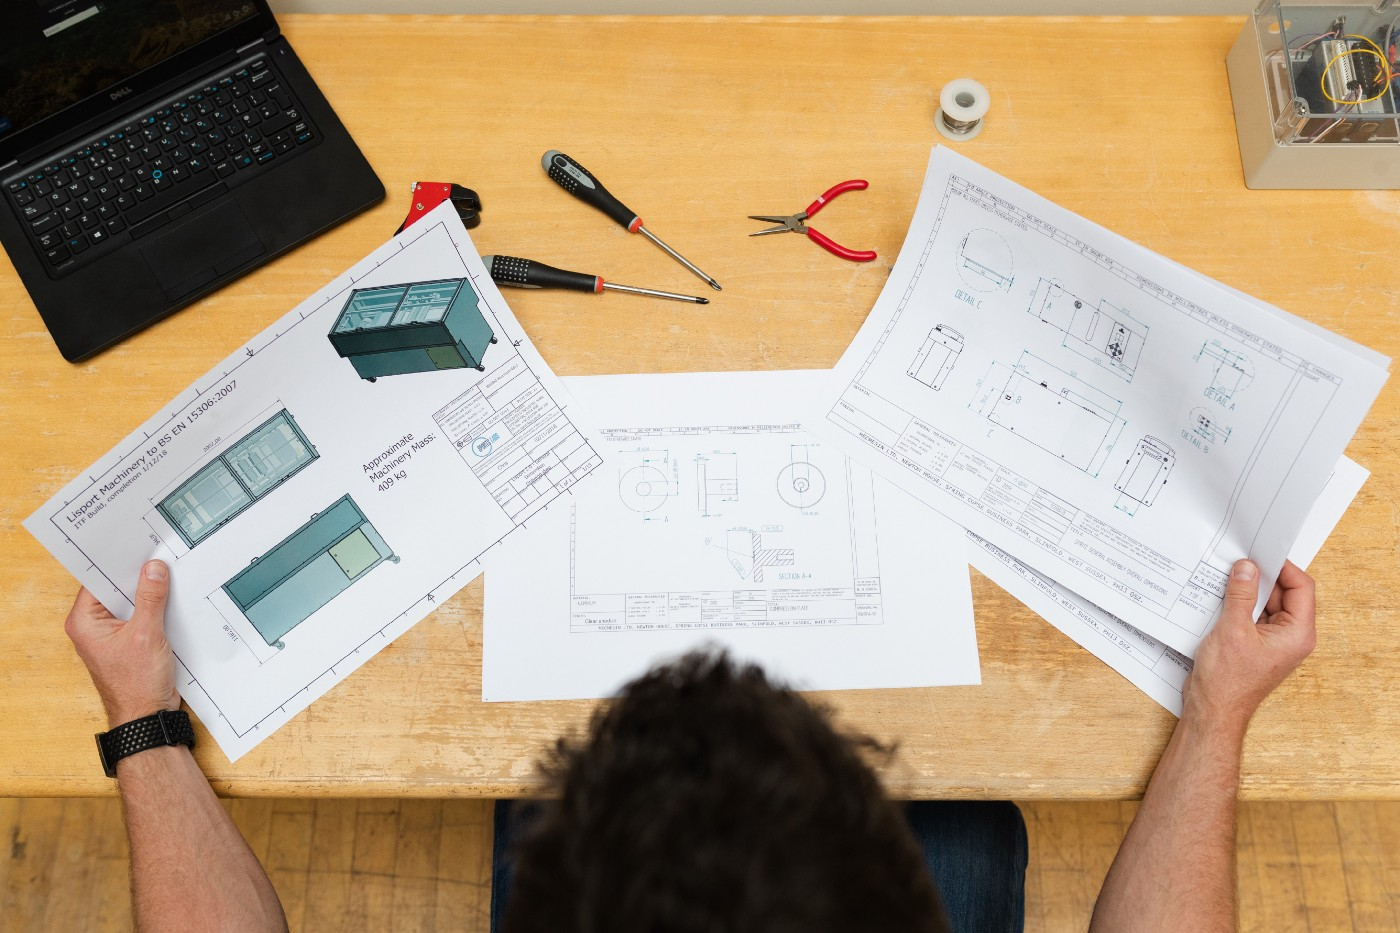 10 Lessons I've Learned From Architecting an Enterprise Application